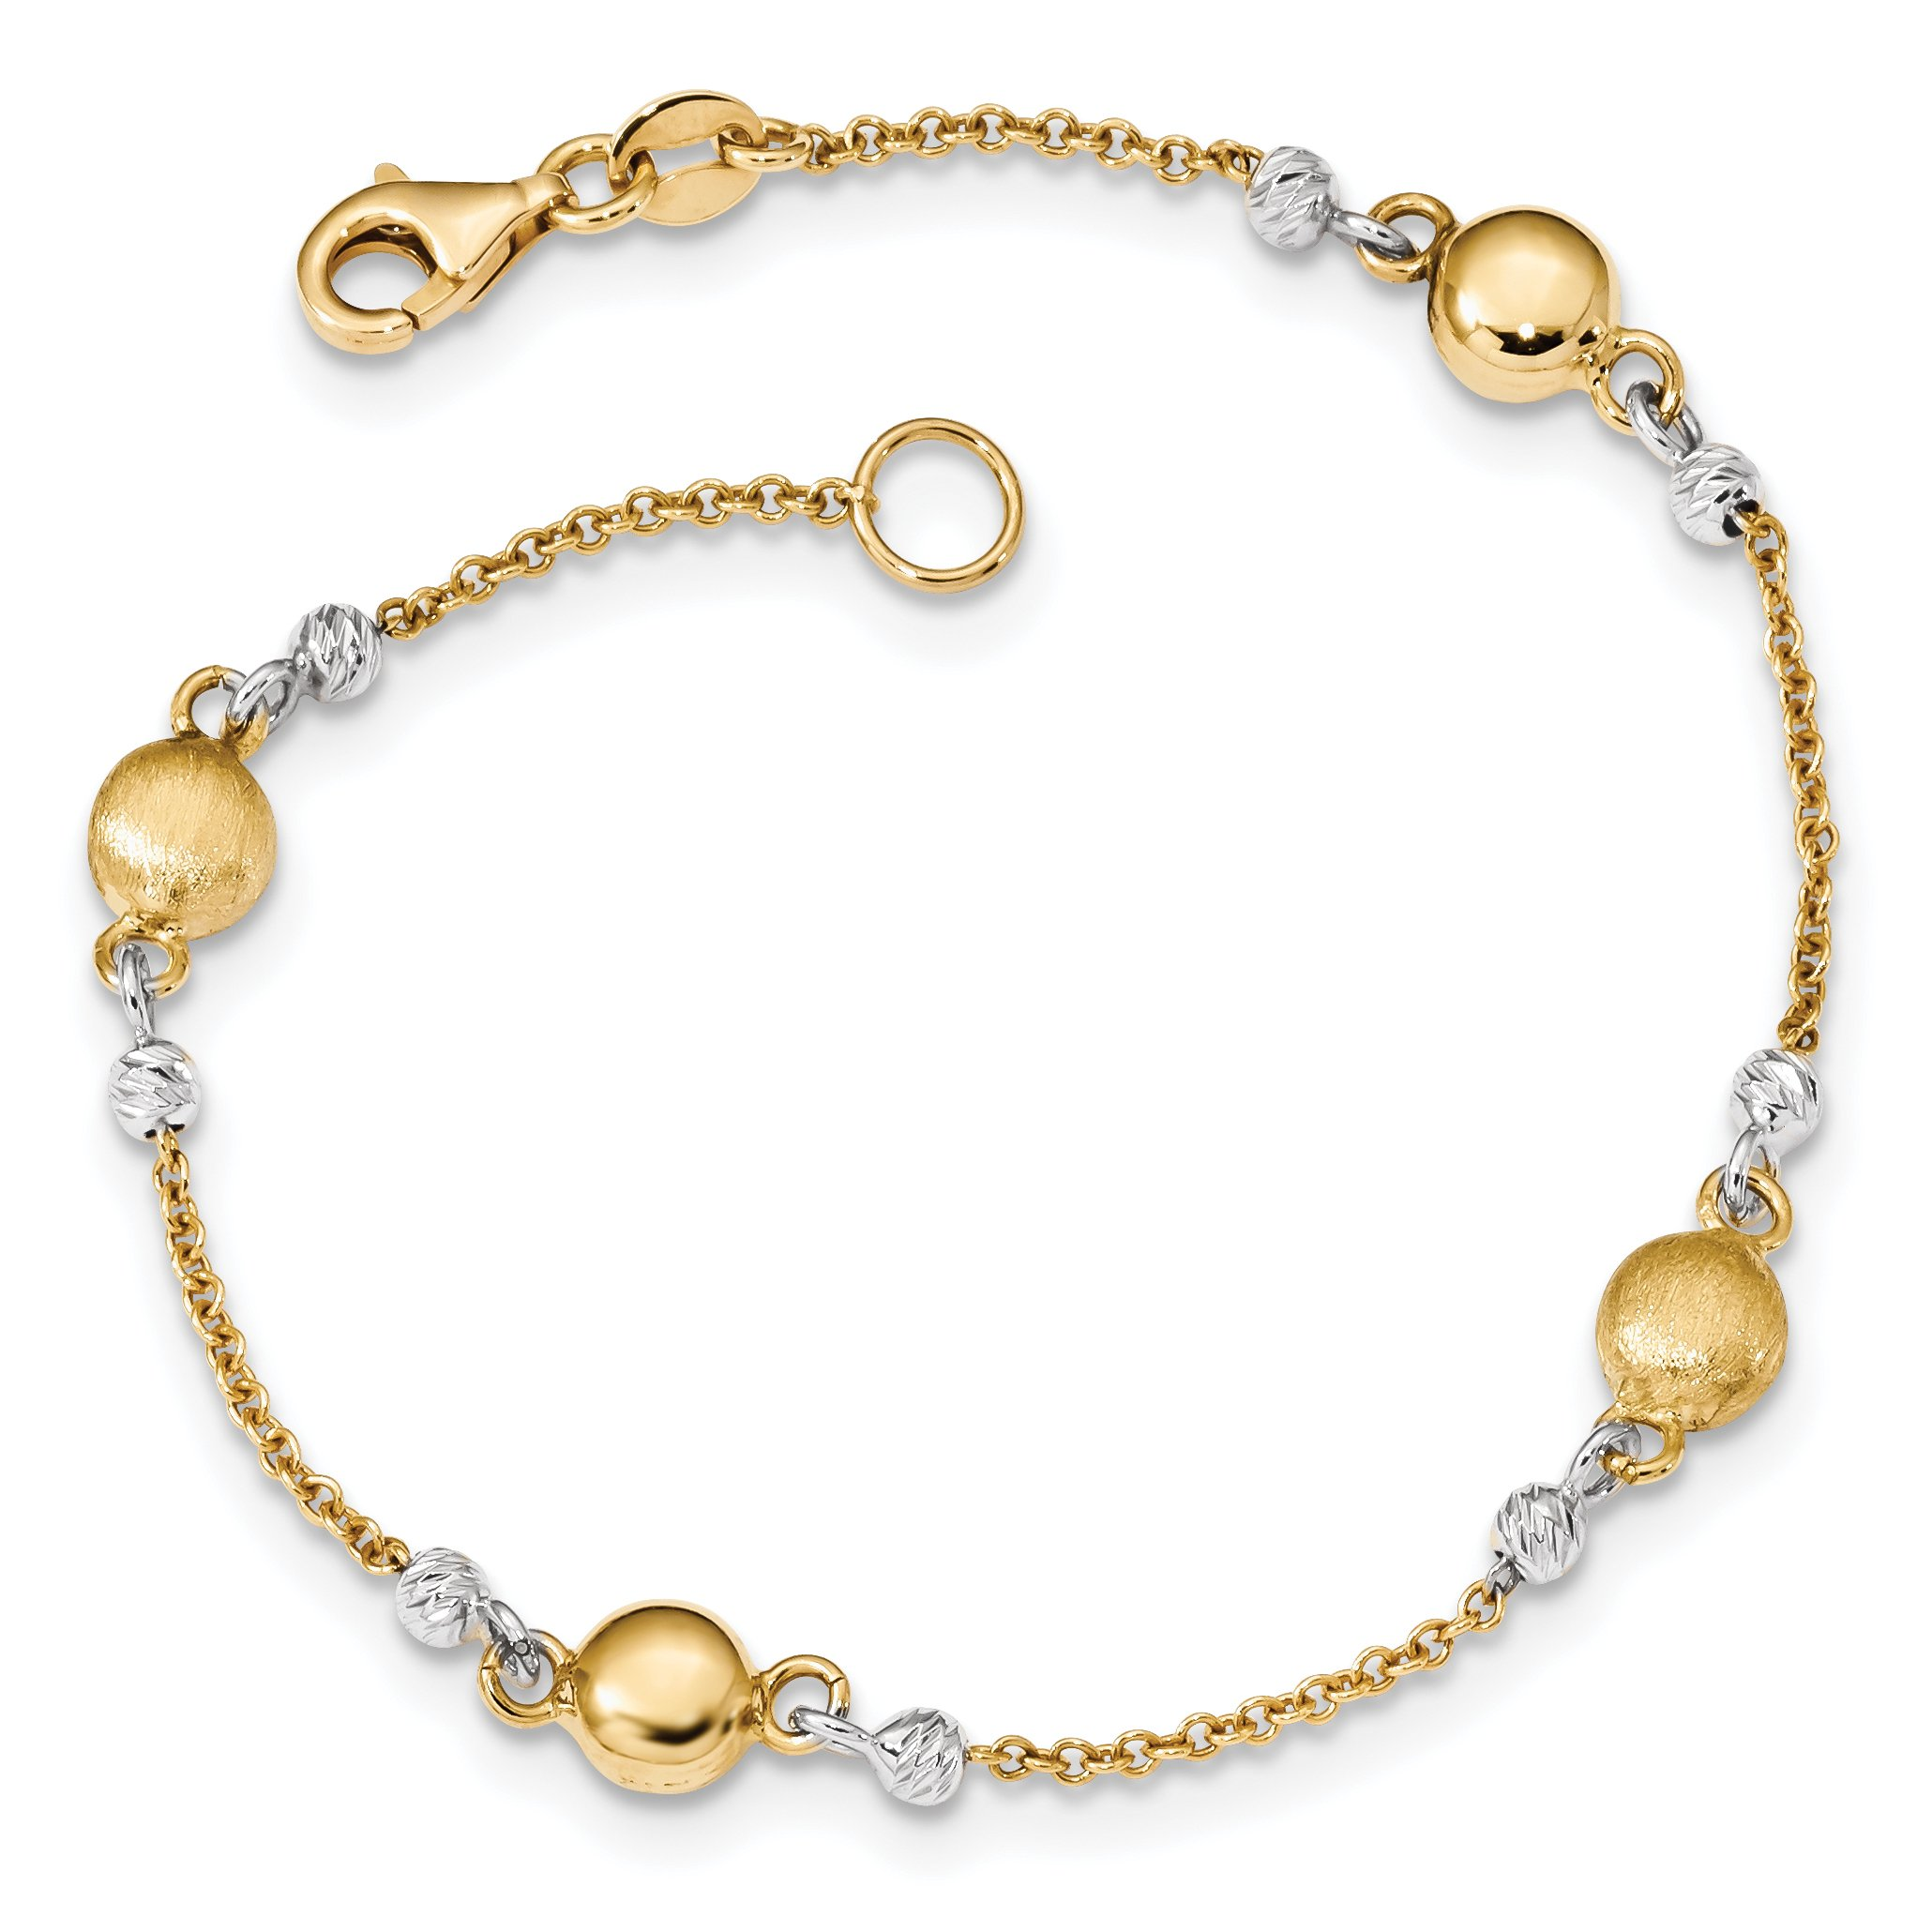 ICE CARATS 14k Two Tone Yellow Gold Textured Beaded 7.5 Inch Bracelet Fancy Bead Beadsed Fine Jewelry Gift Set For Women Heart